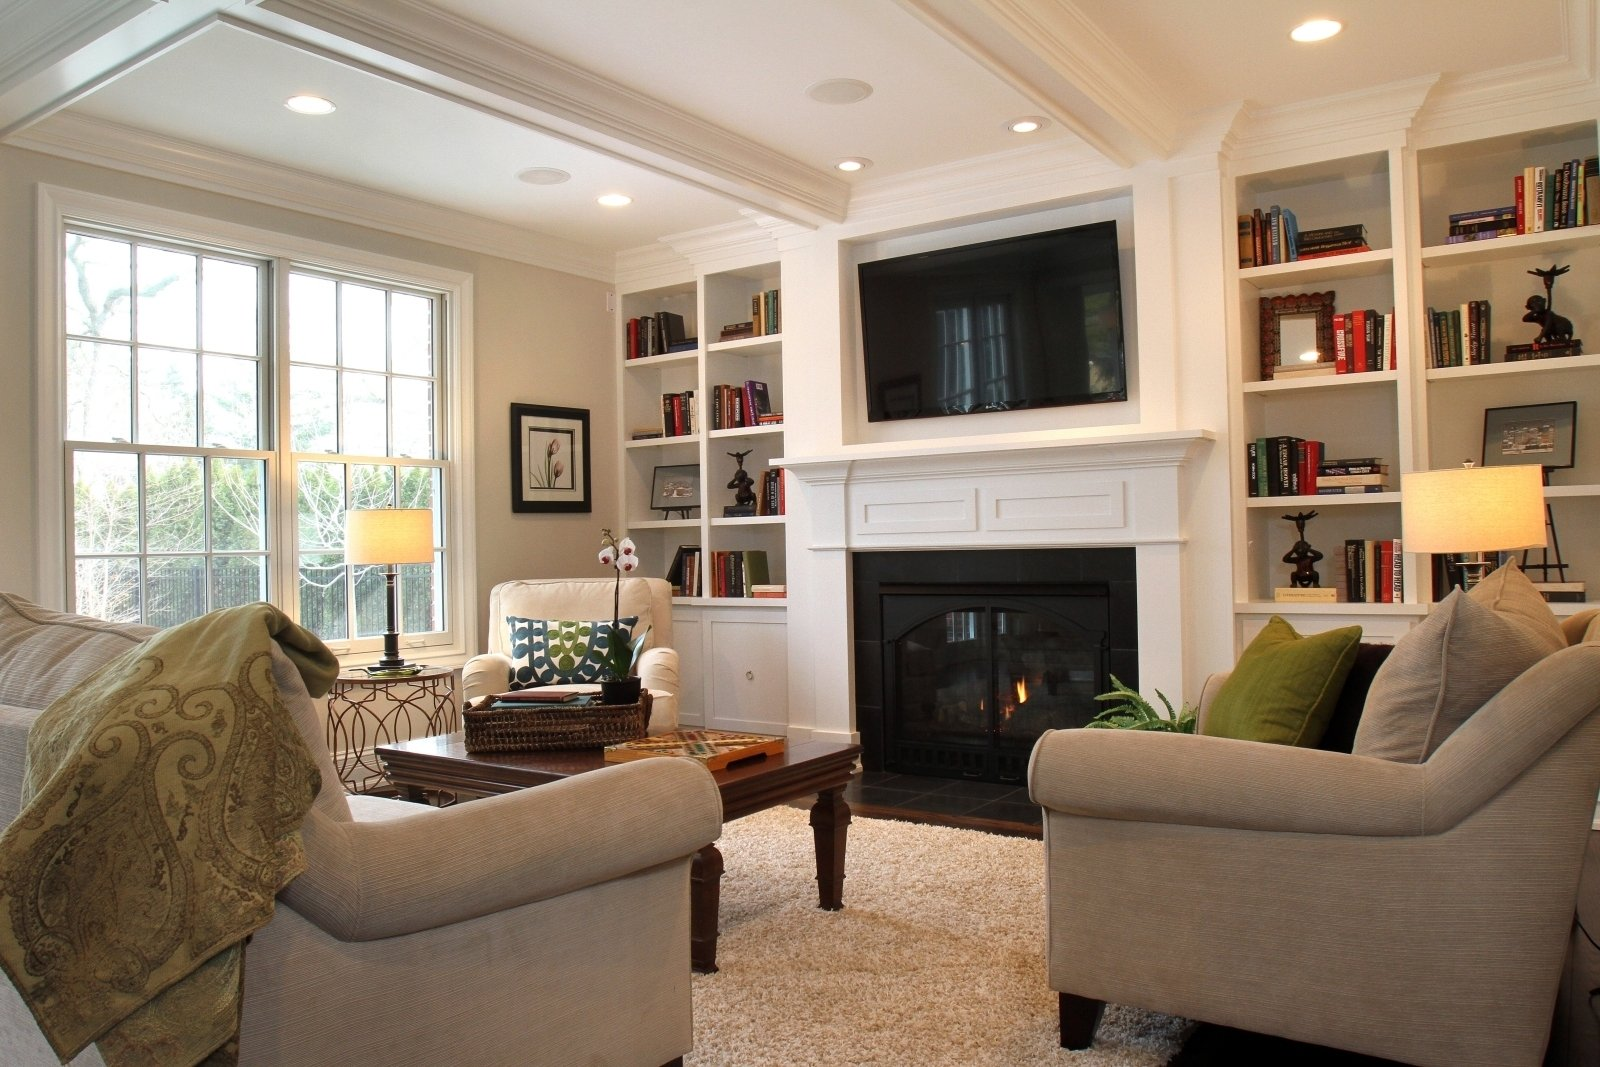 10 Trendy Family Room Ideas With Tv family room ideas with fireplace and tv 2017 including fireplaces